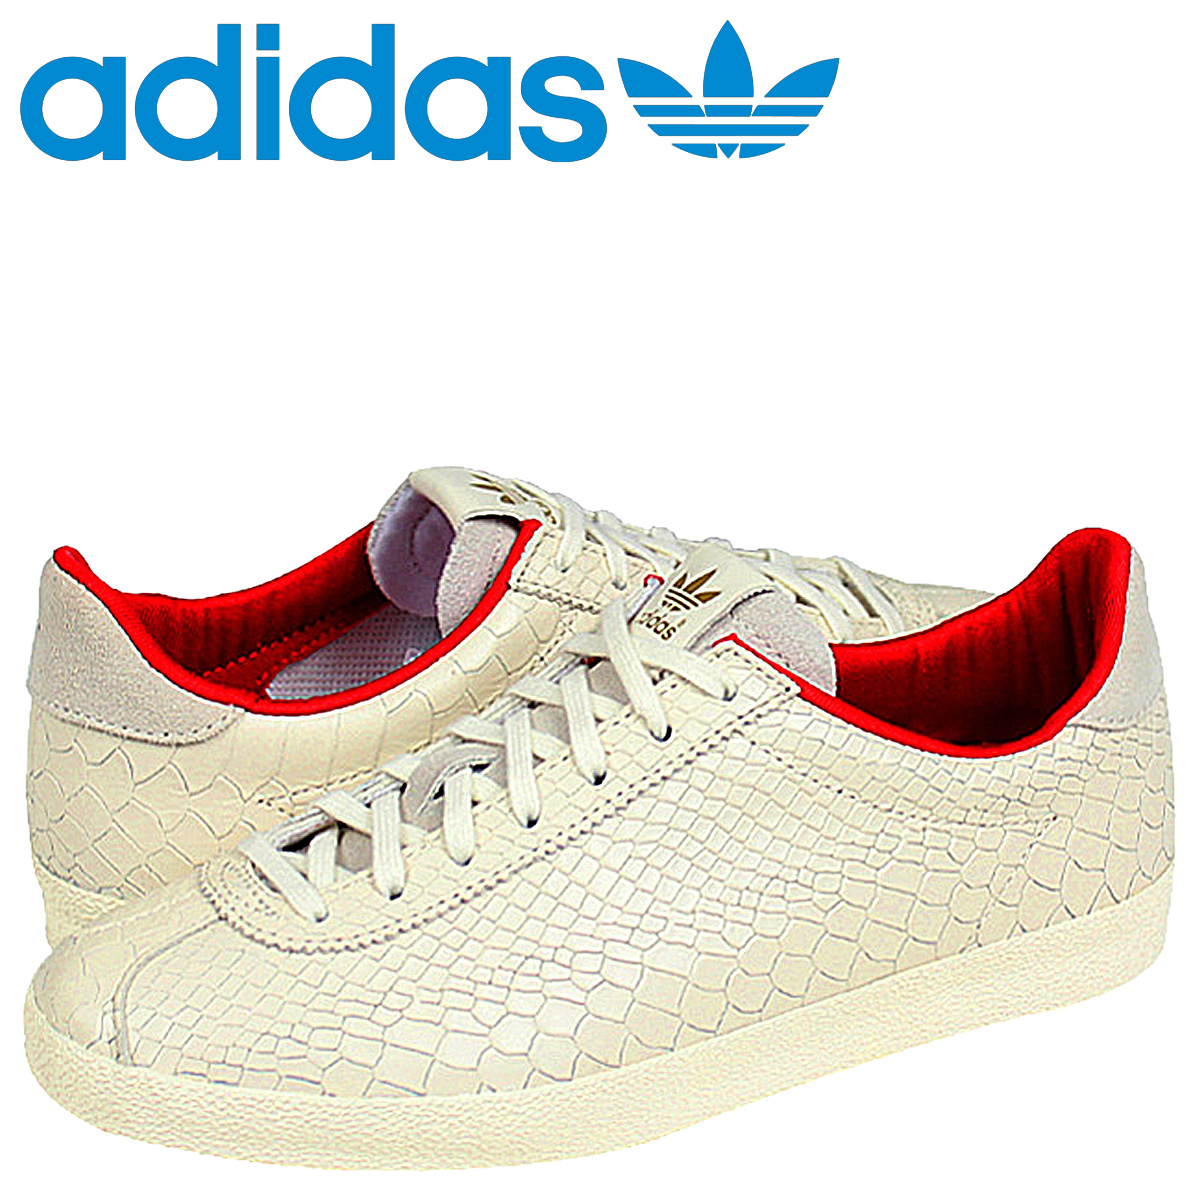 size 40 42643 c2782 After the break, taking the head brothers name, adidas. Classic Mark  symbolizes the adidas said three lines are simple yet also face brand  impact, ...